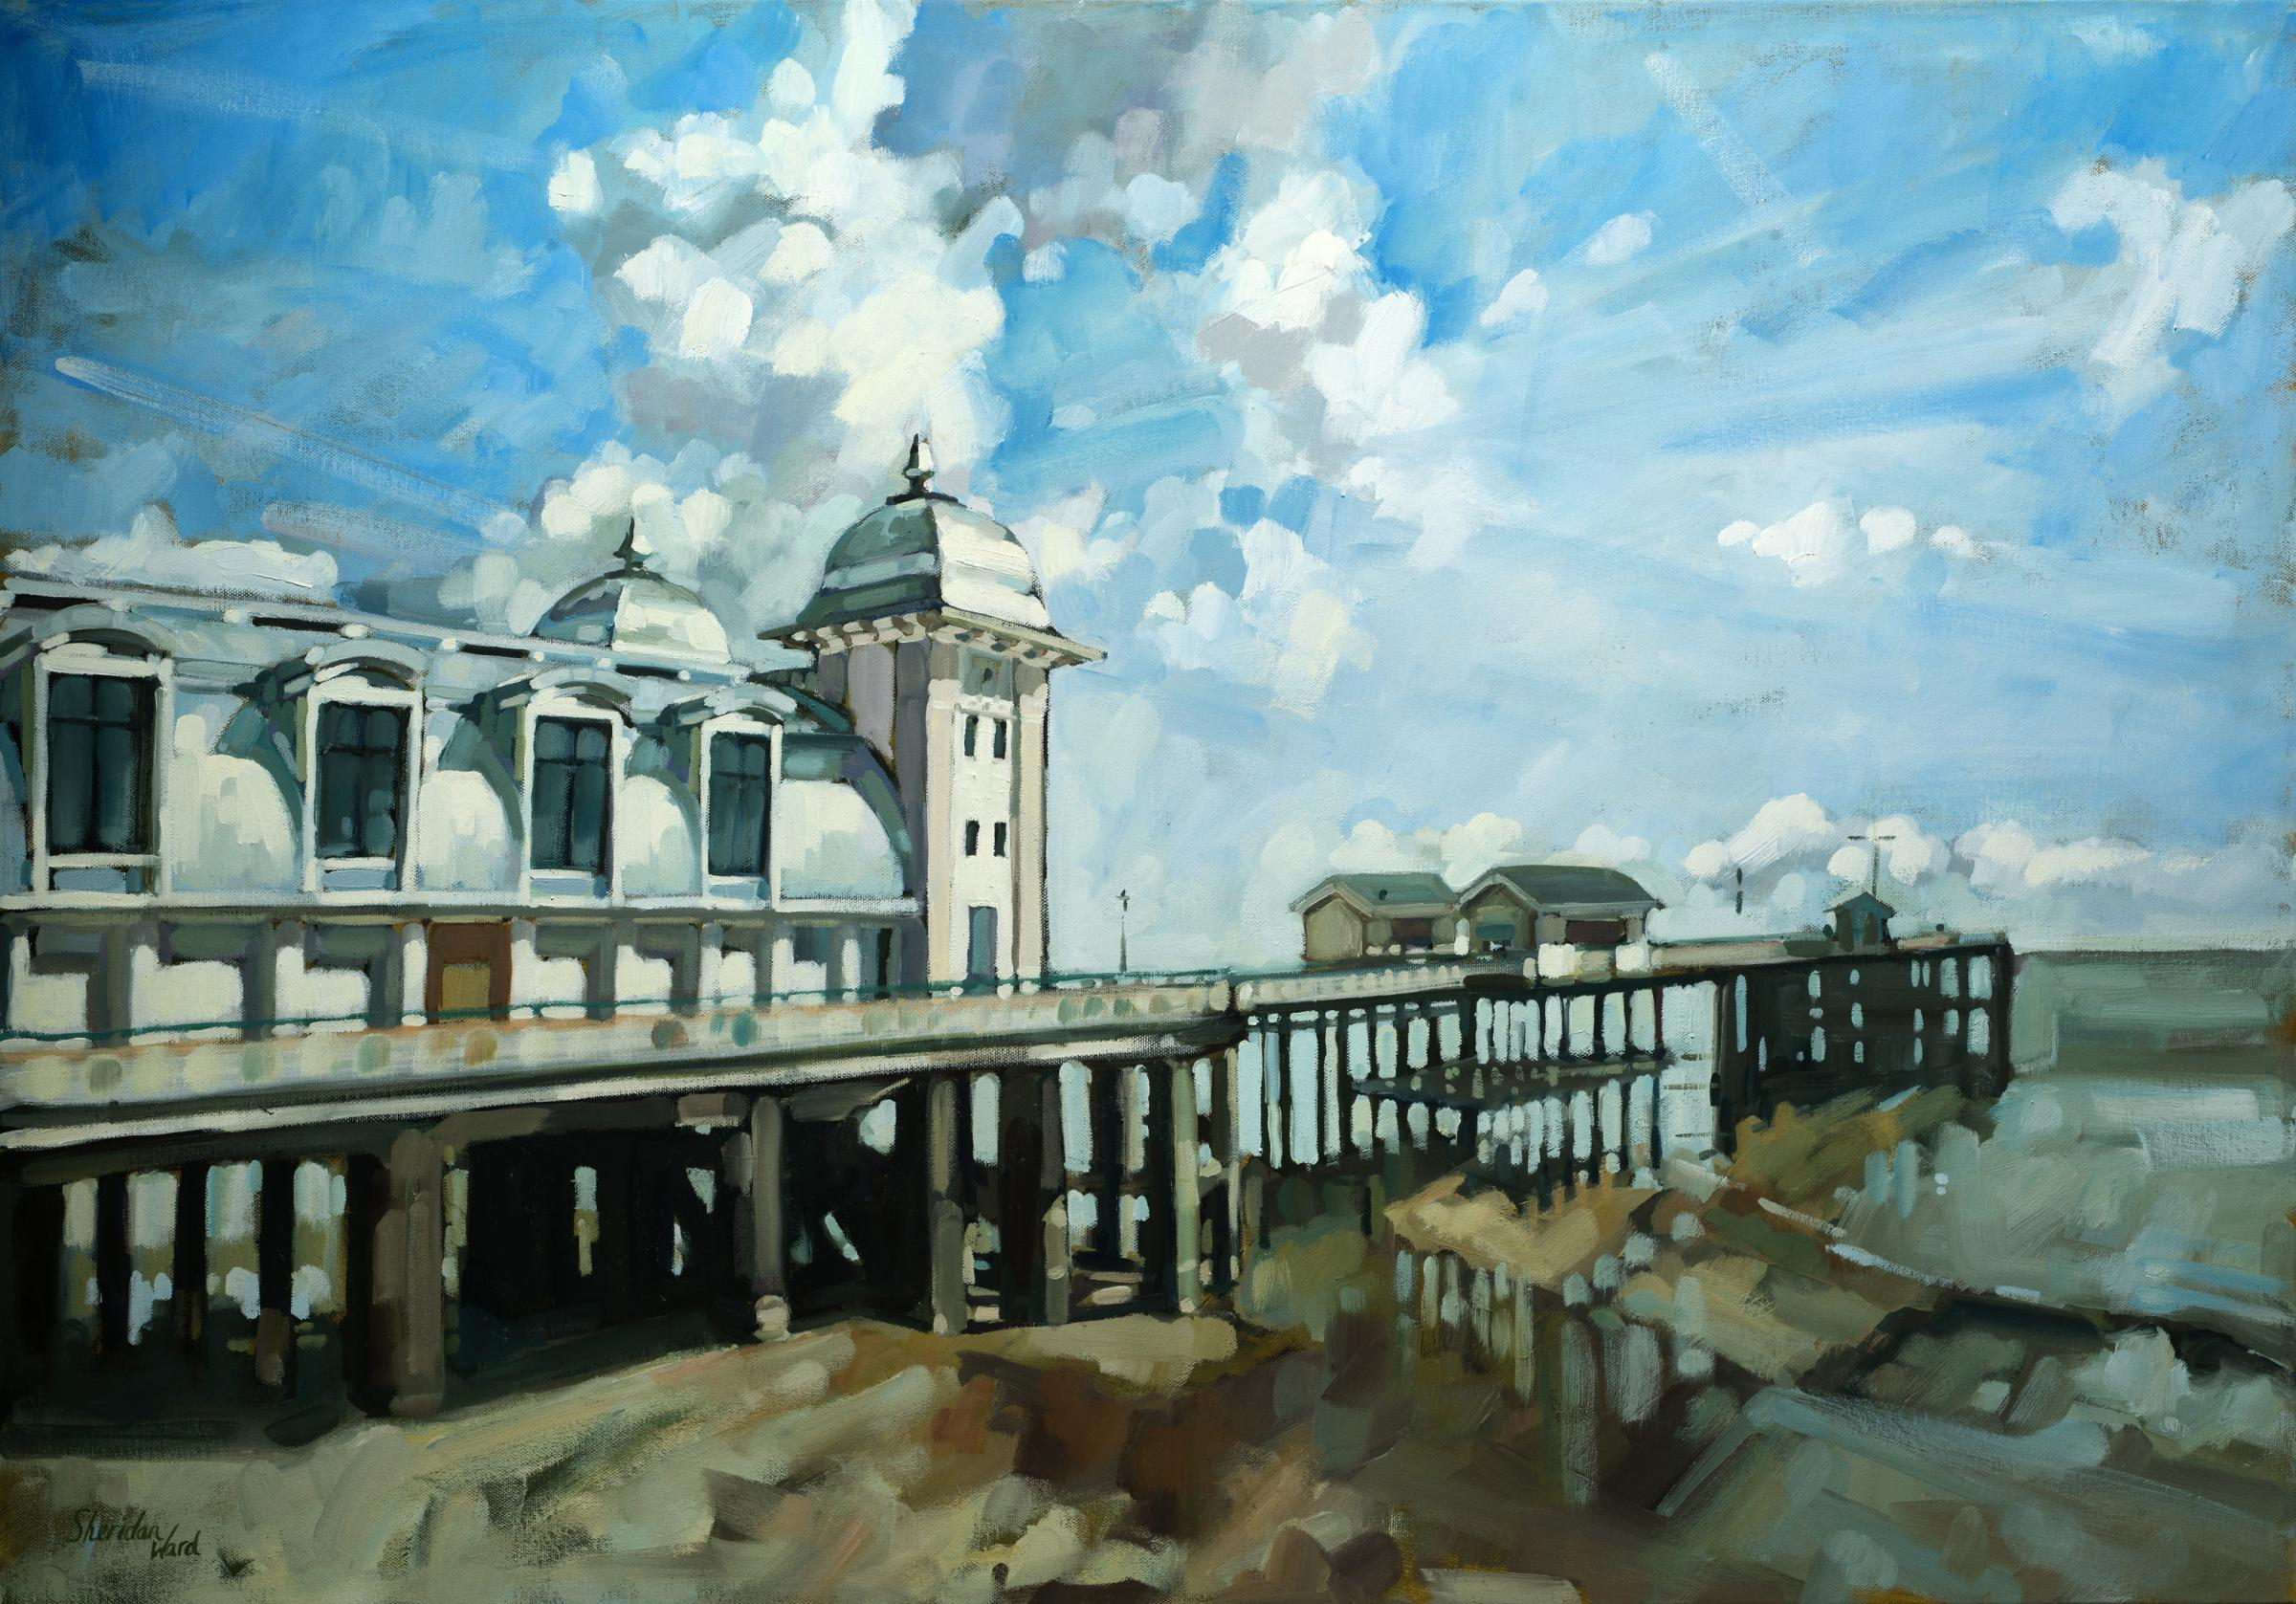 Penarth Pier Pavilion to host first fine art exhibition